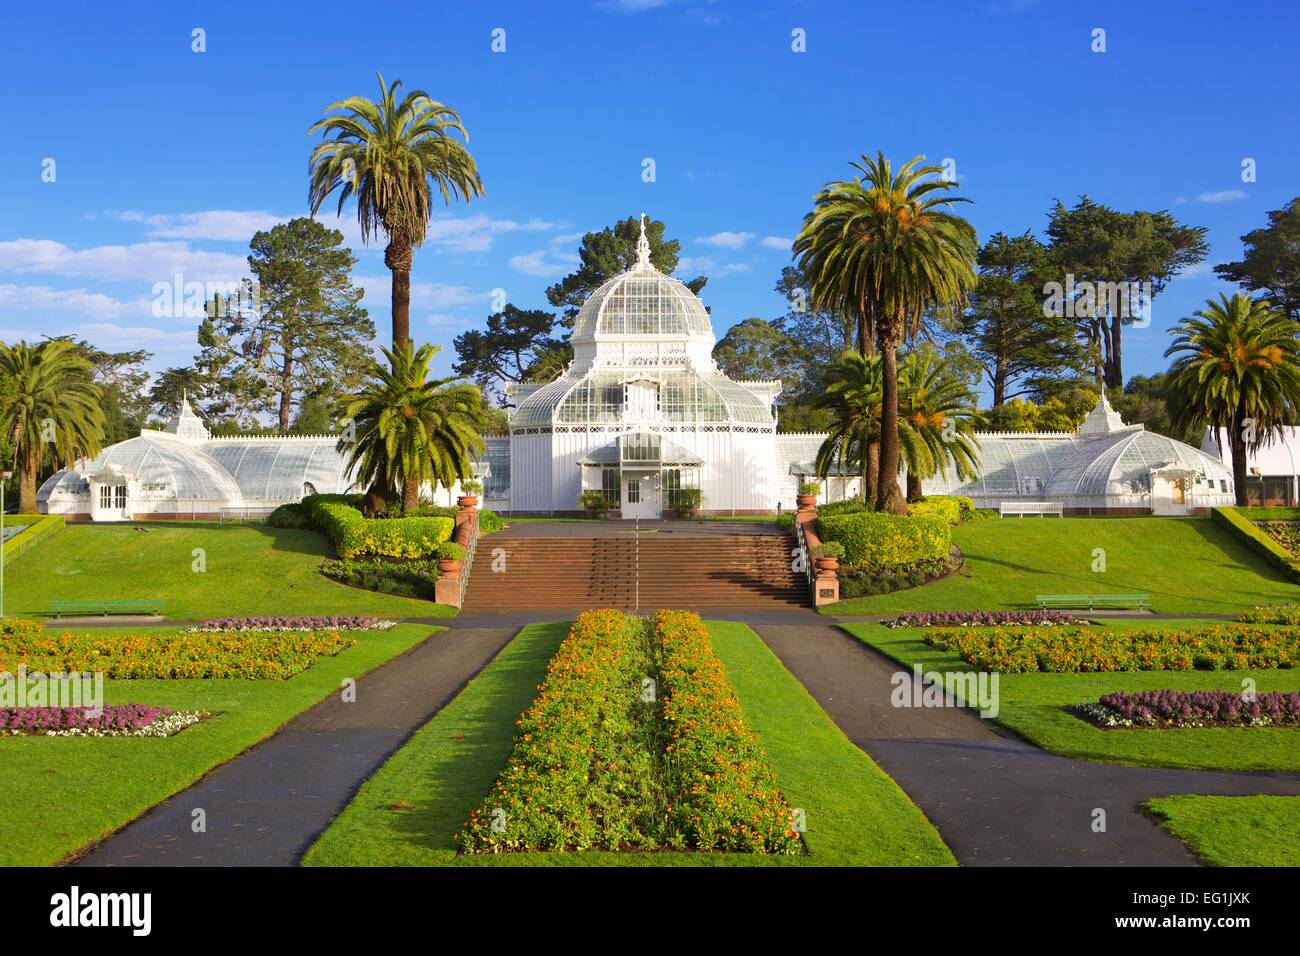 The Victorian Conservatory Of Flowers Botanical Garden In Golden Gate Stock Photo 78712779 Alamy